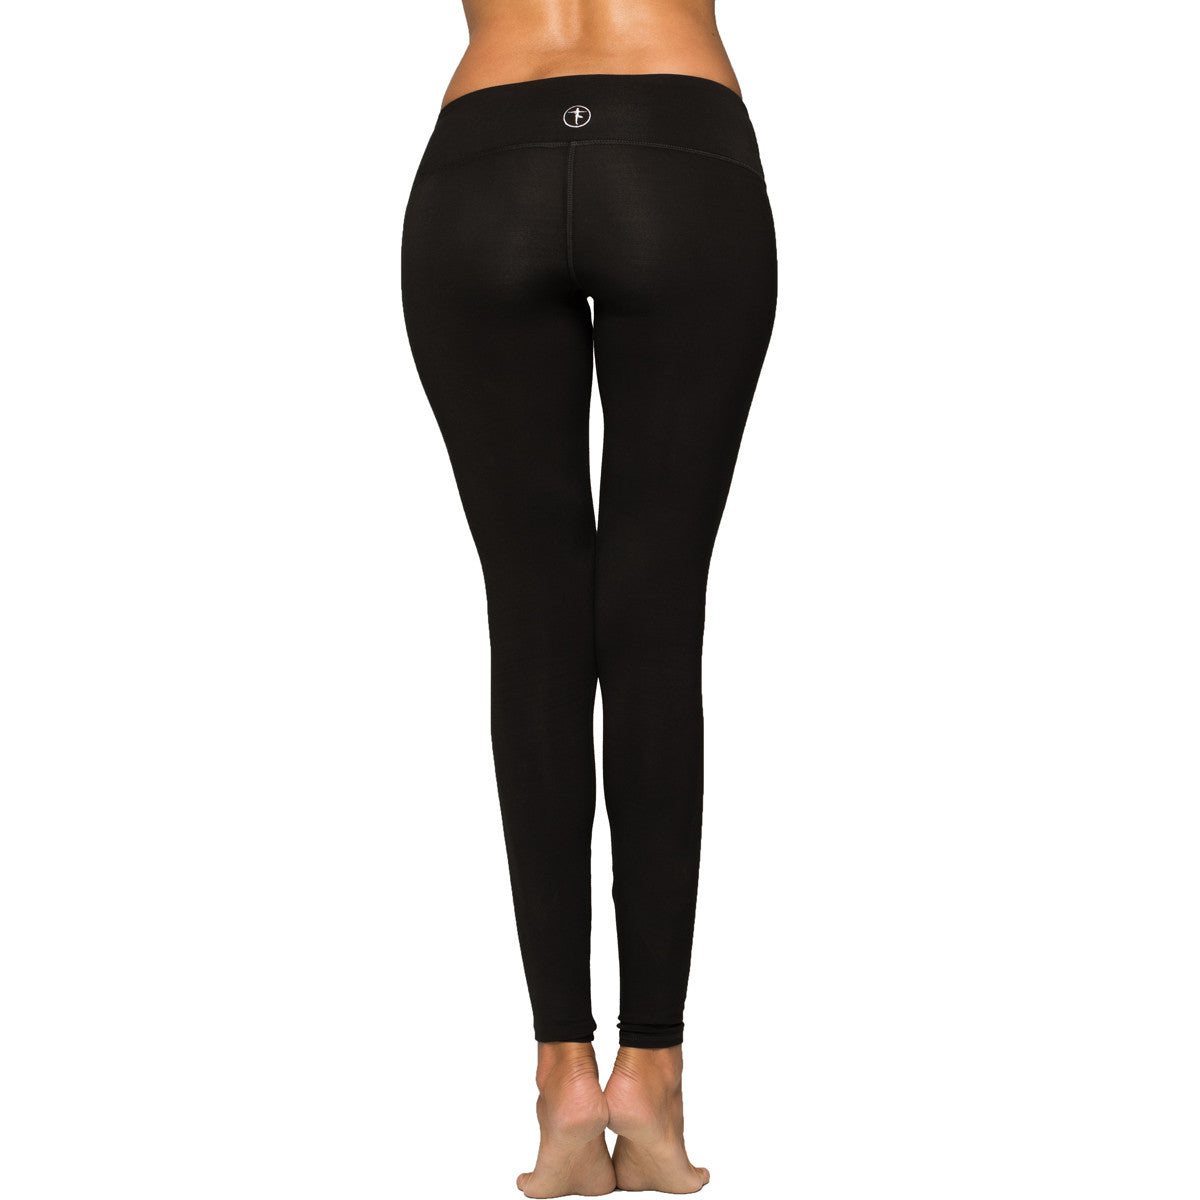 866bacdbcc Black Organic Cotton Yoga Pants by YOGiiZA - YOGiiZA.com